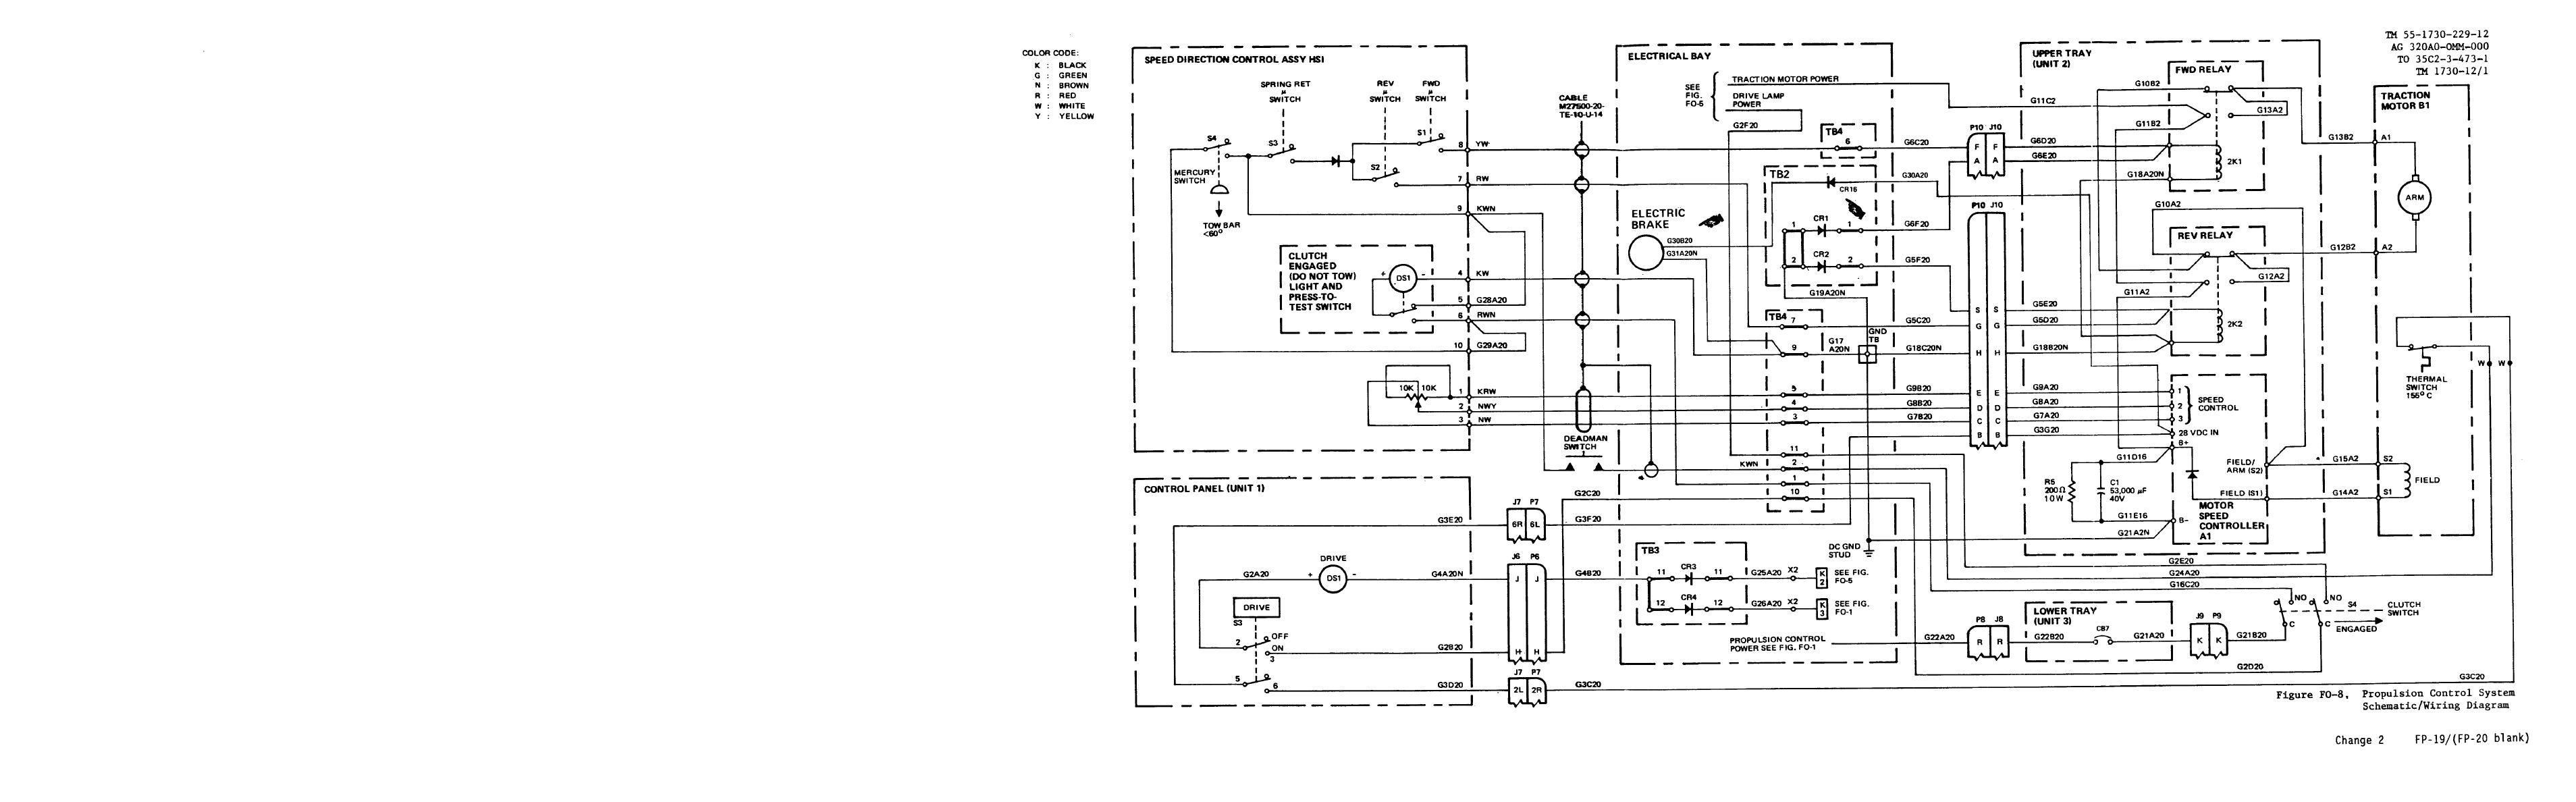 TM 55 1730 229 120551im figure fo 8 propulsion control system schematic wiring diagram wiring diagram for access control system at eliteediting.co